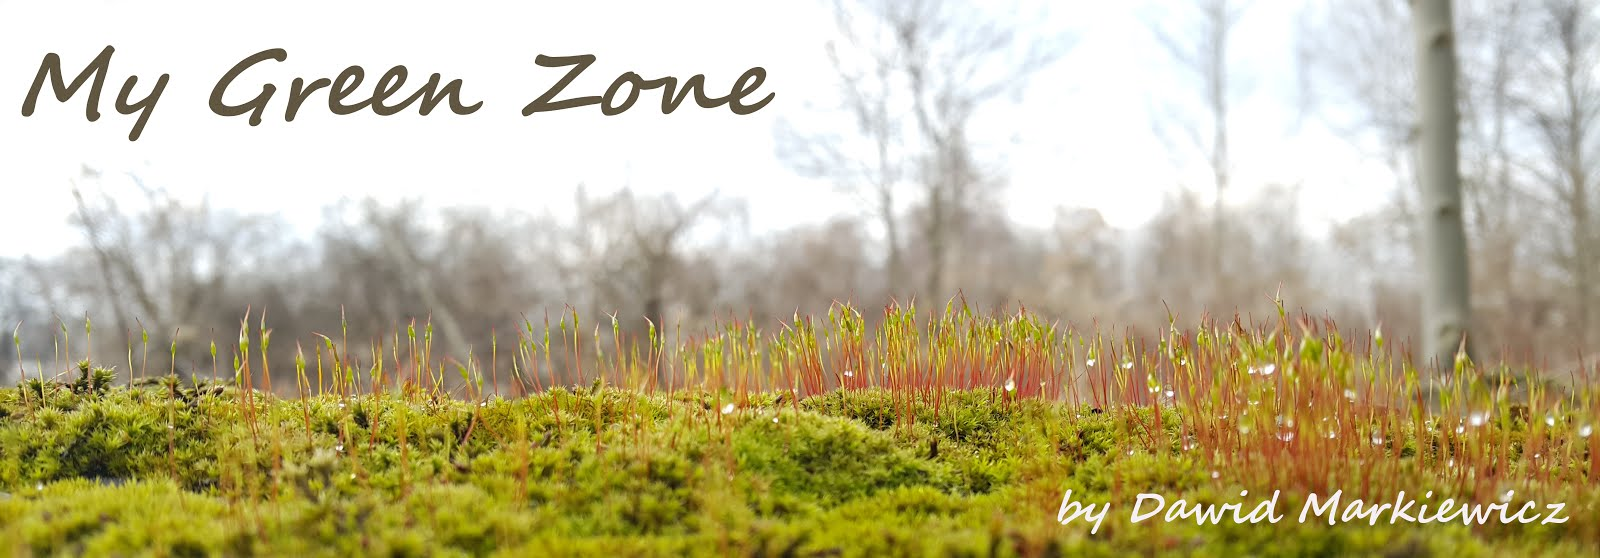 My Green Zone - Bonsai Blog by Dawid Markiewicz